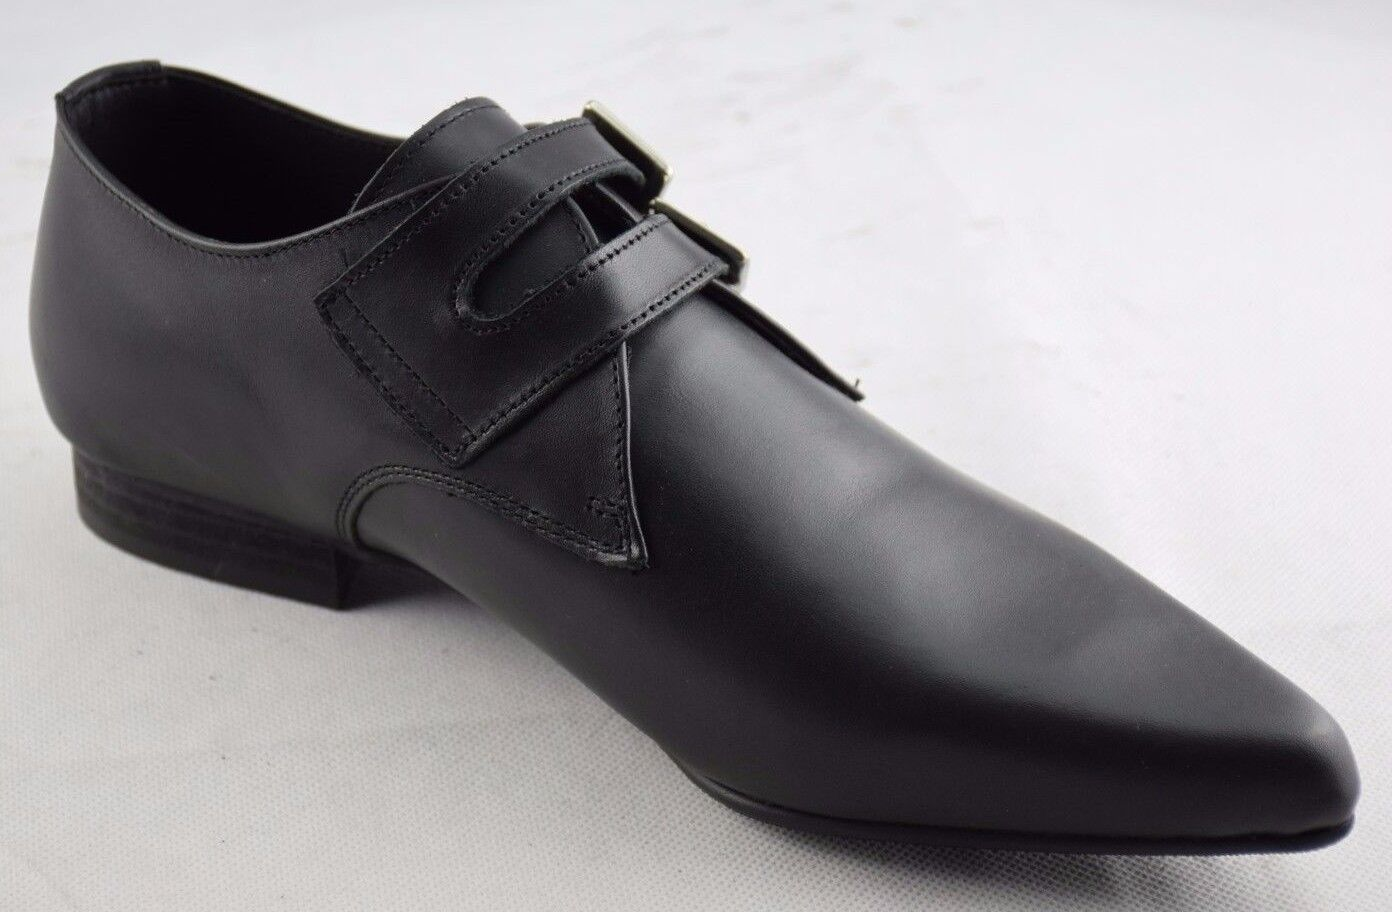 Steel Buckle Ground Zapatos Negro Leather Monk Buckle Steel Winklepicker Casual Zapatos Pointed 580bed